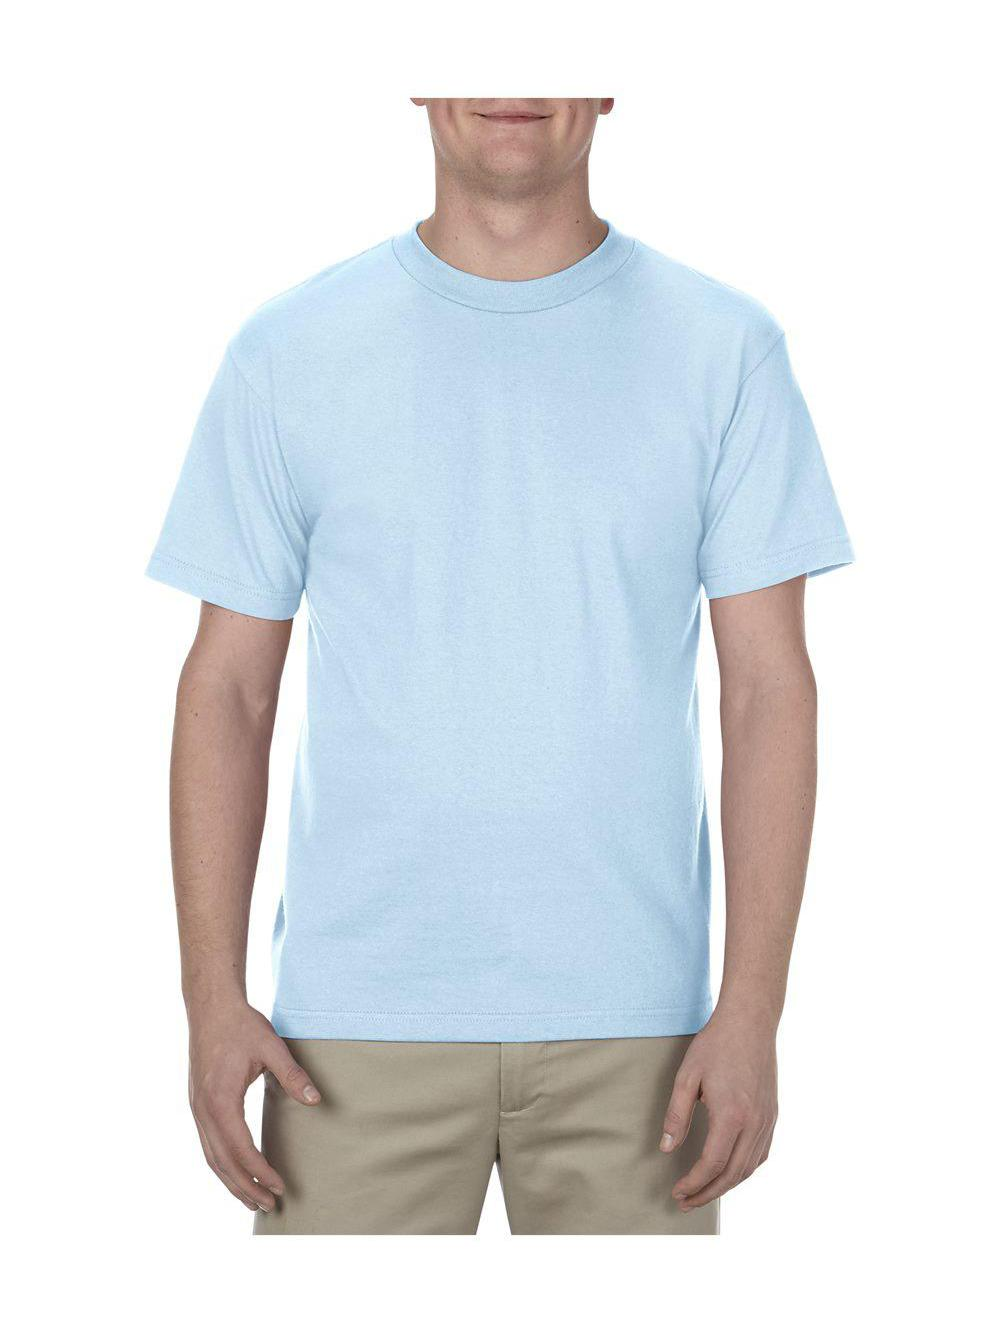 ALSTYLE-Classic-T-Shirt-1301 thumbnail 62